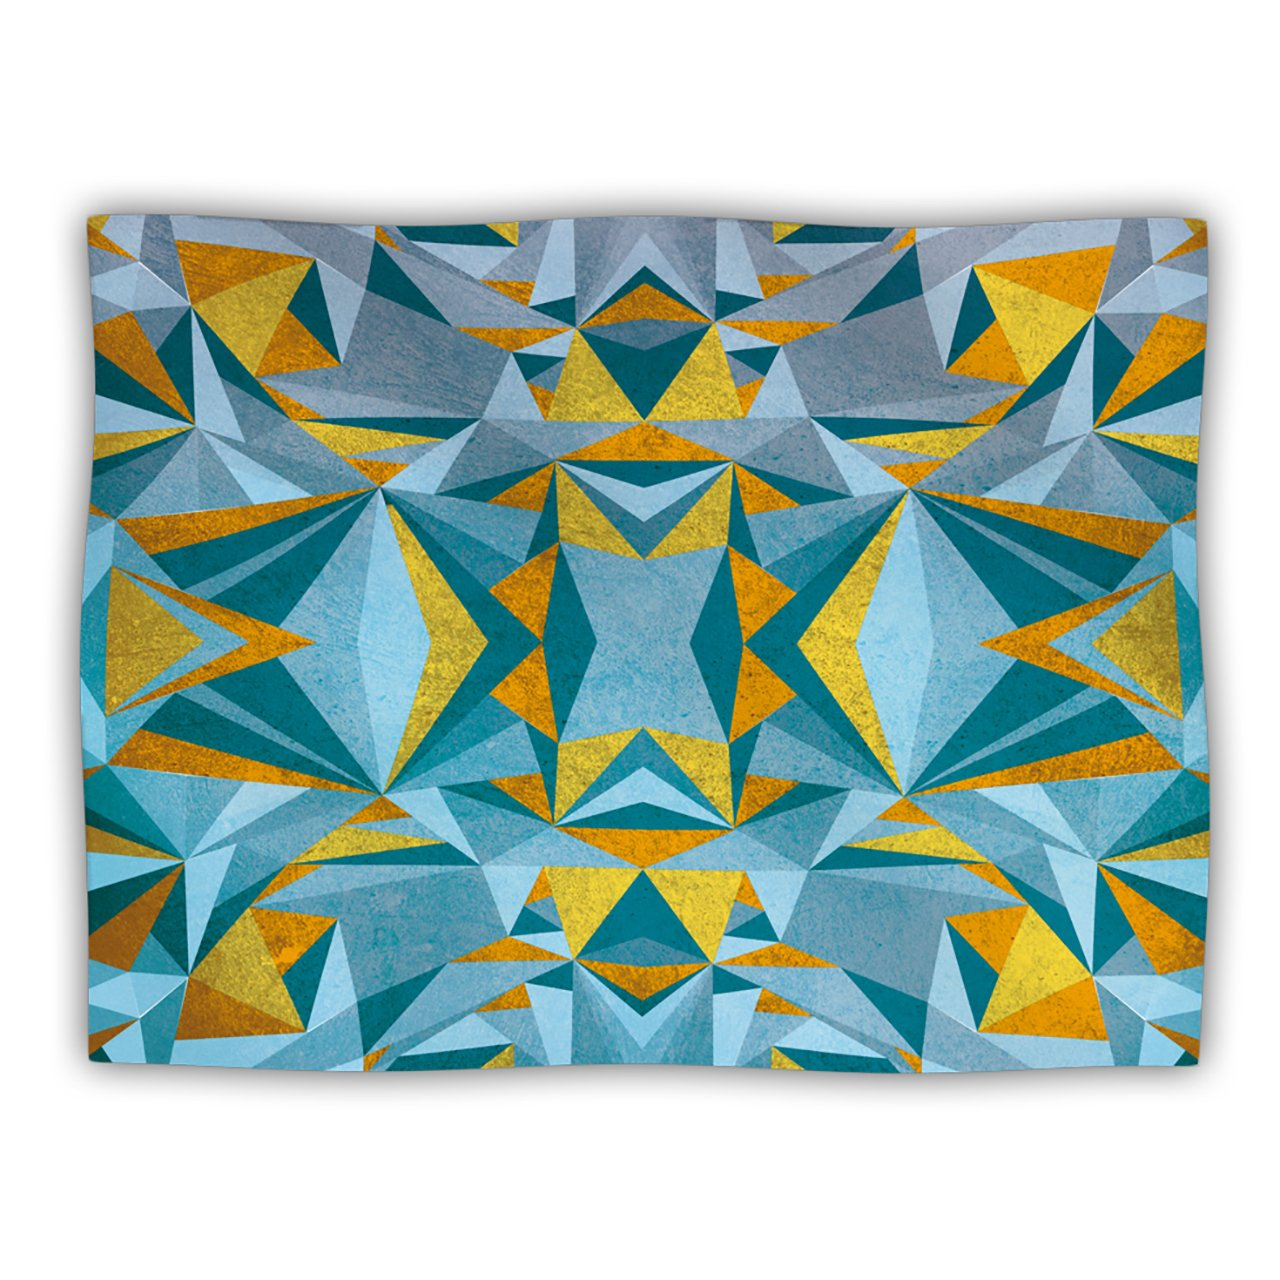 Kess InHouse Nika Martinez 'Abstraction bluee and gold' Dog Blanket, 40 by 30-Inch